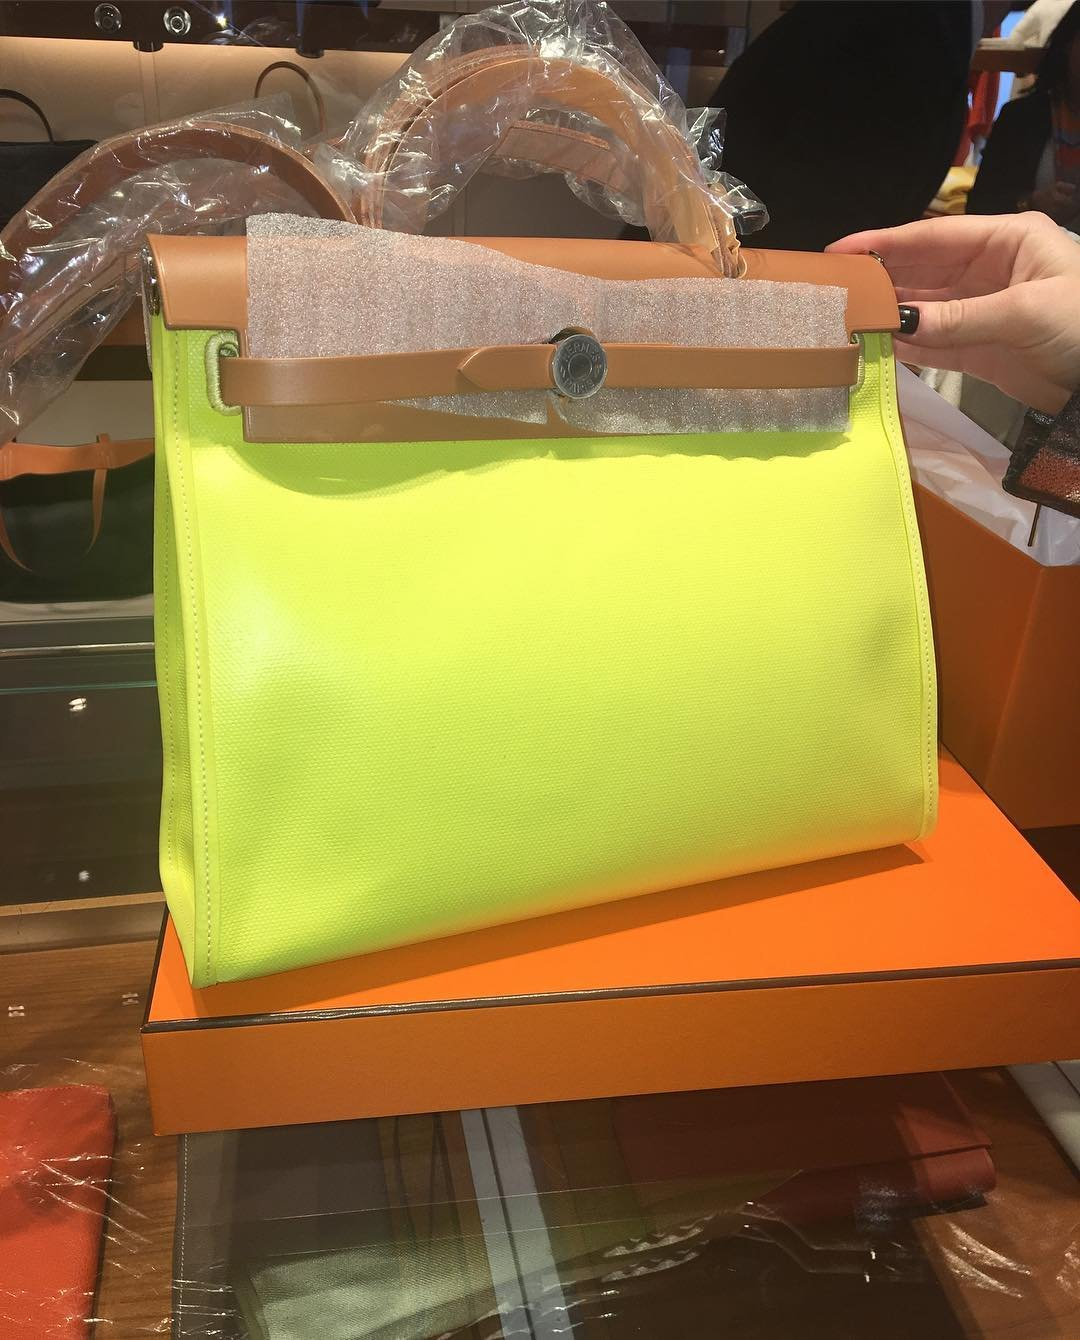 Hermes-Herbag-Zip-Bag-in-Yellow-2